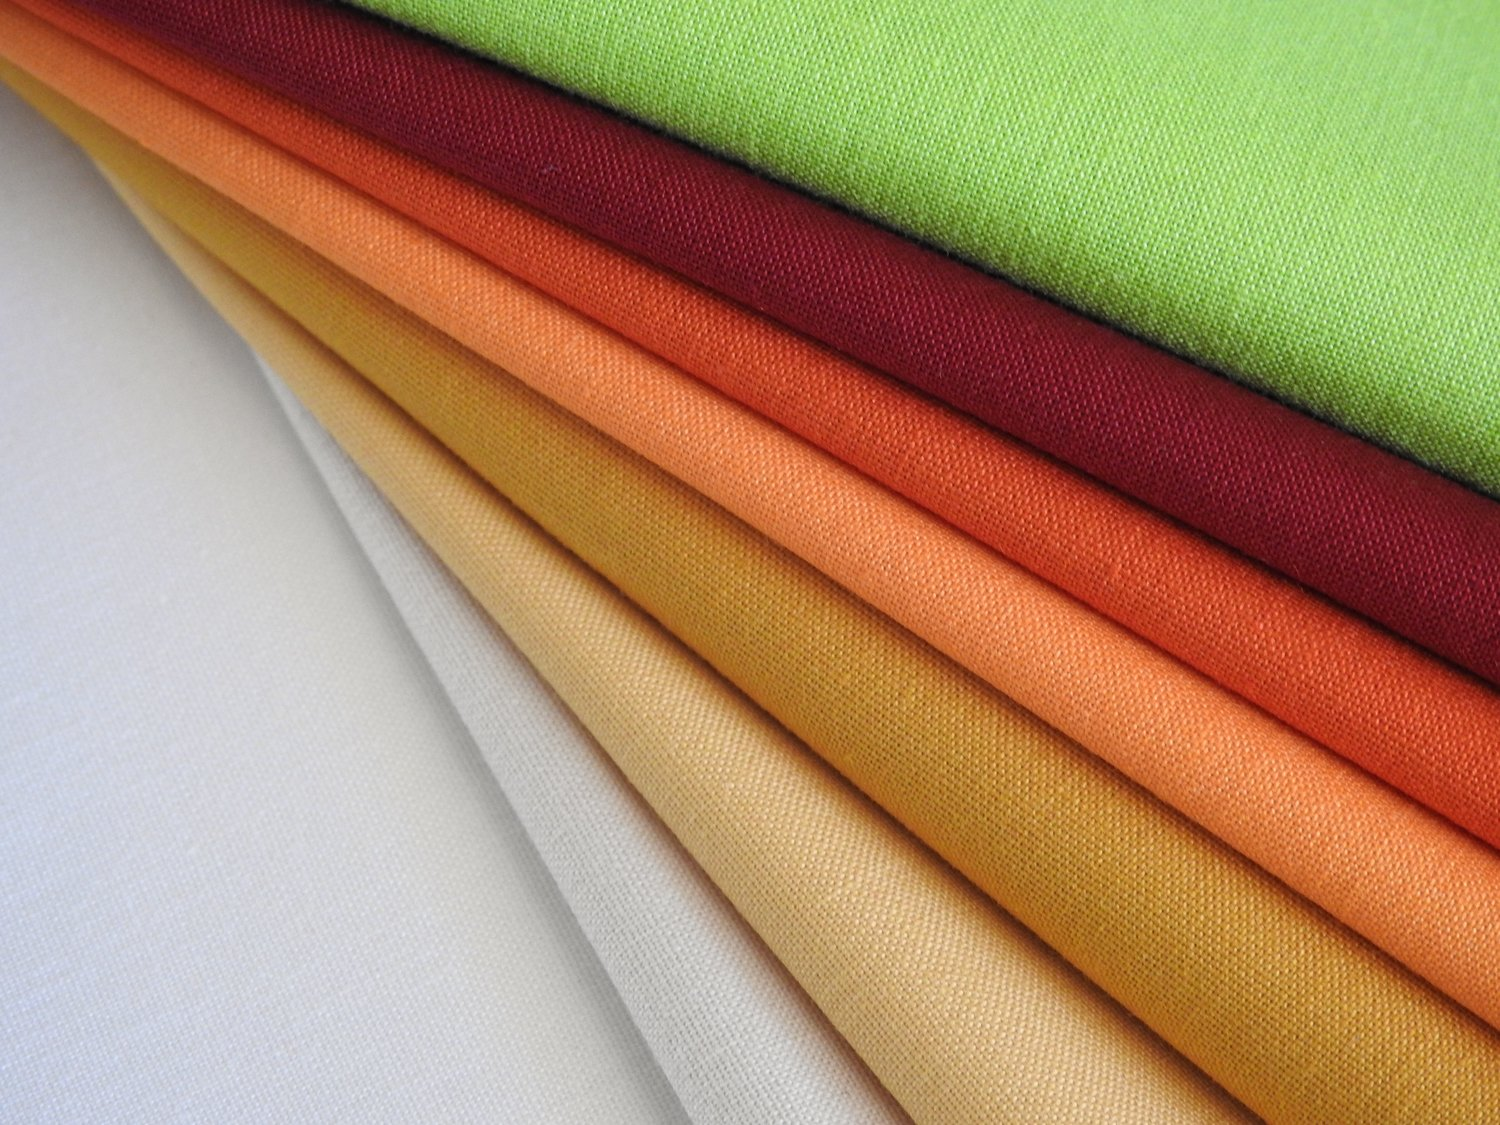 Northcott ColorWorks Premium Solids